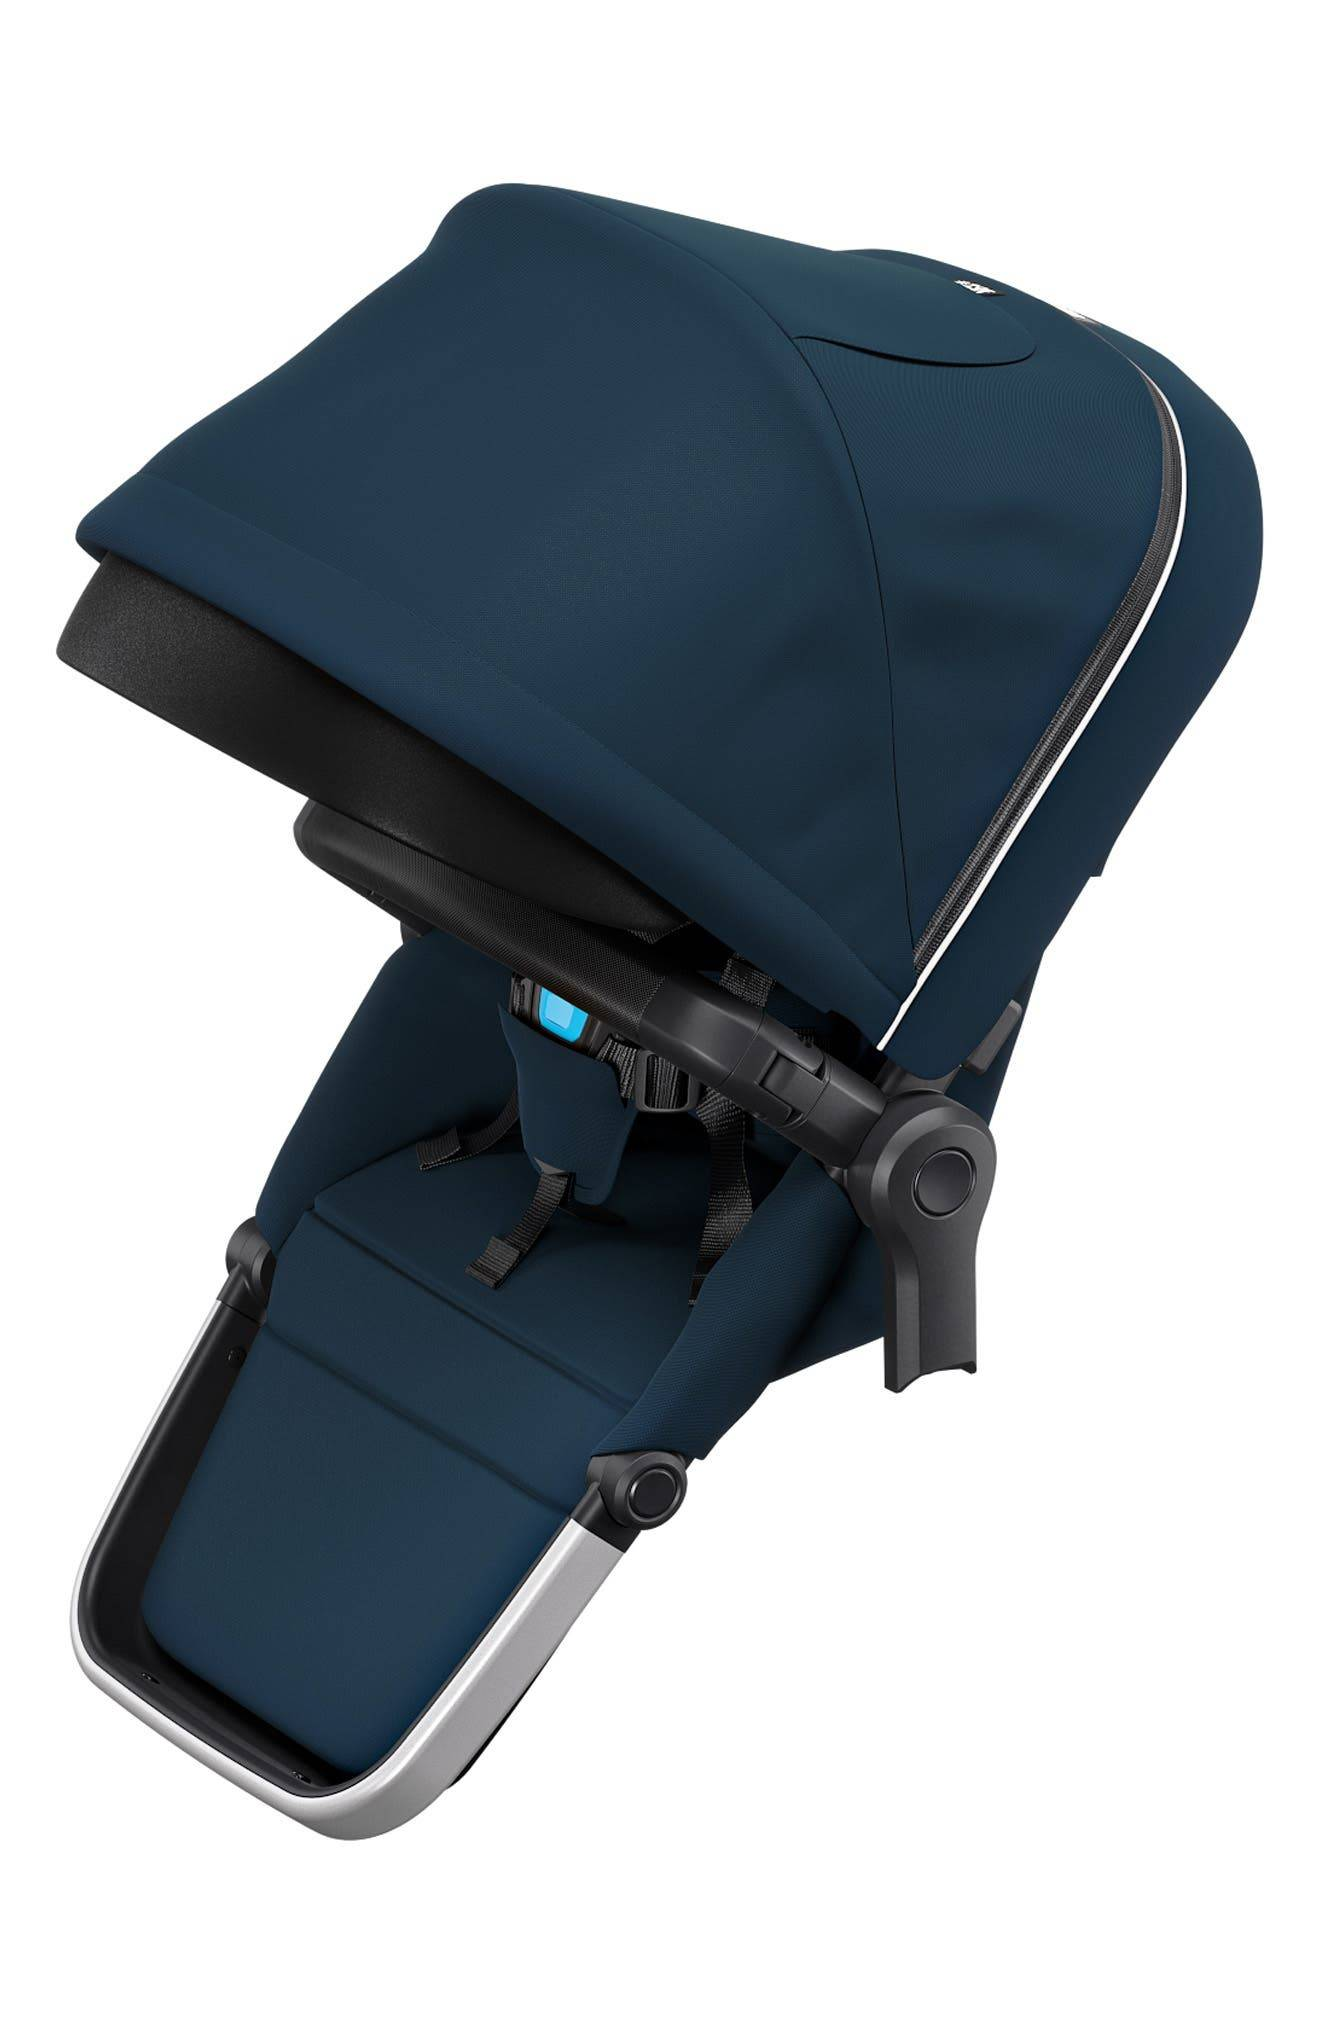 Thule Infant Thule Sibling Seat Accessory For Thule Sleek Stroller, Size One Size - Blue